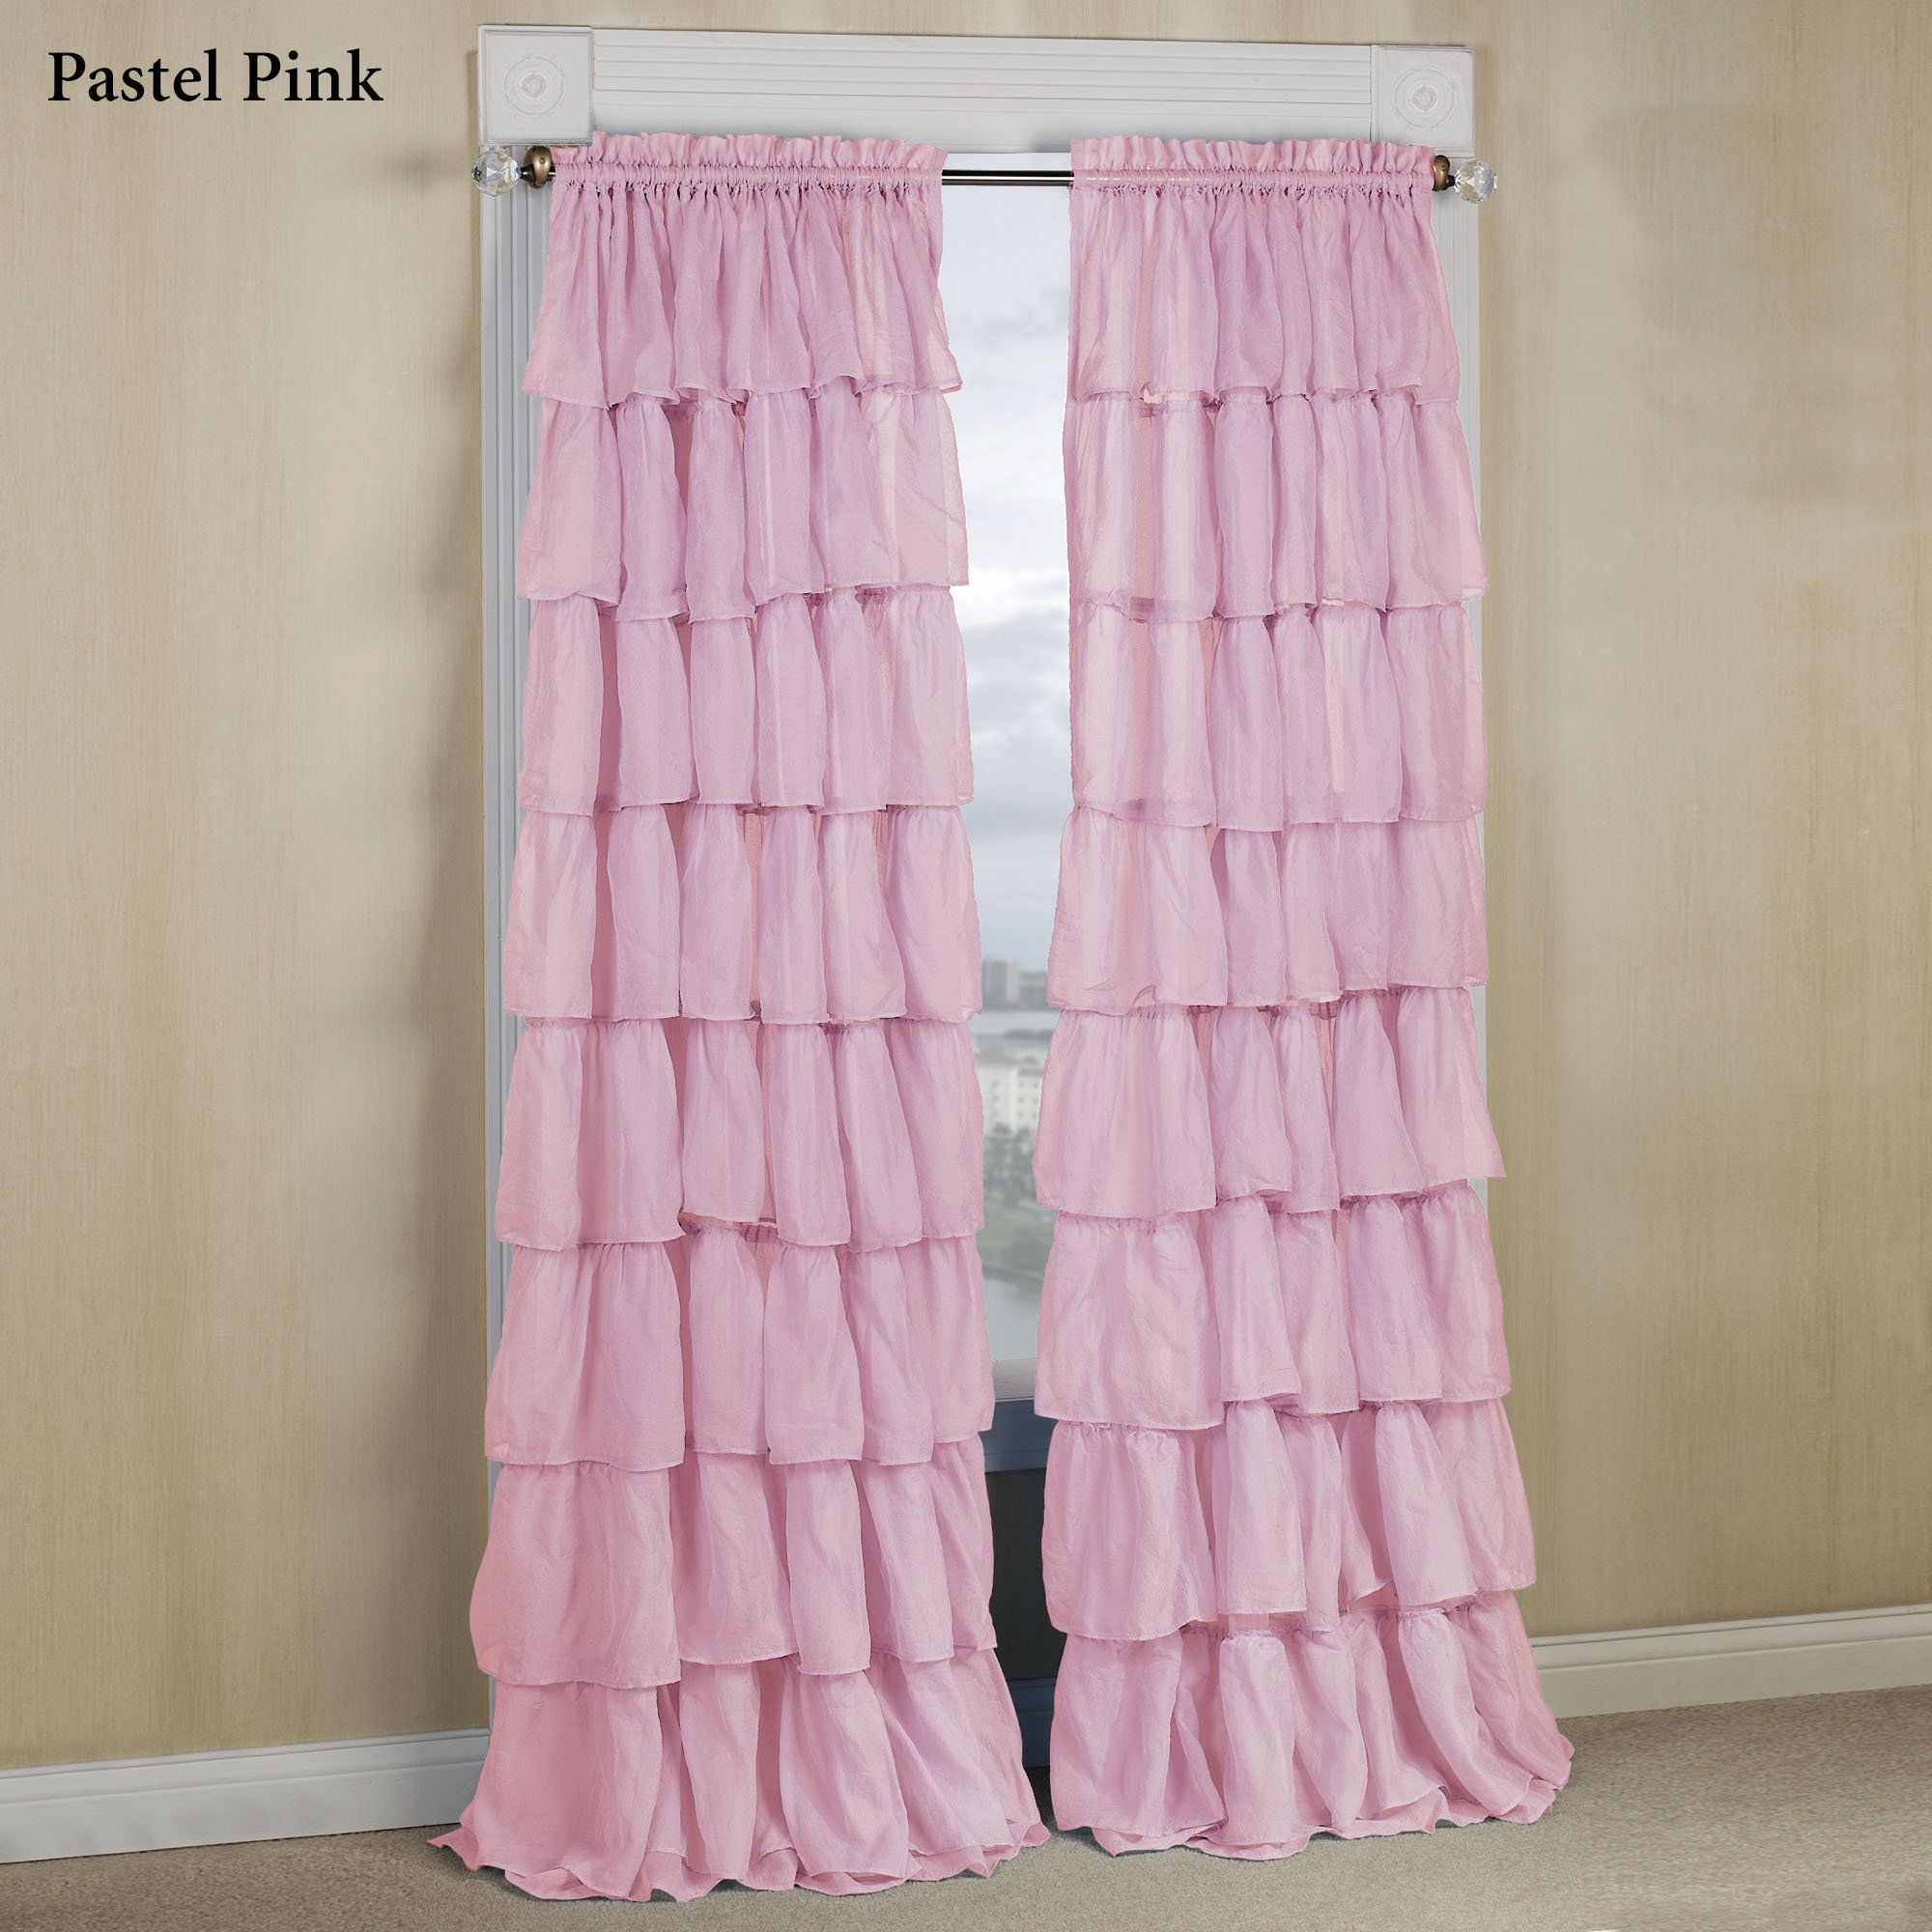 emmas by waverly window to ruffle wide garden x pair floral expand treatment click p white curtain panel tailored curtains